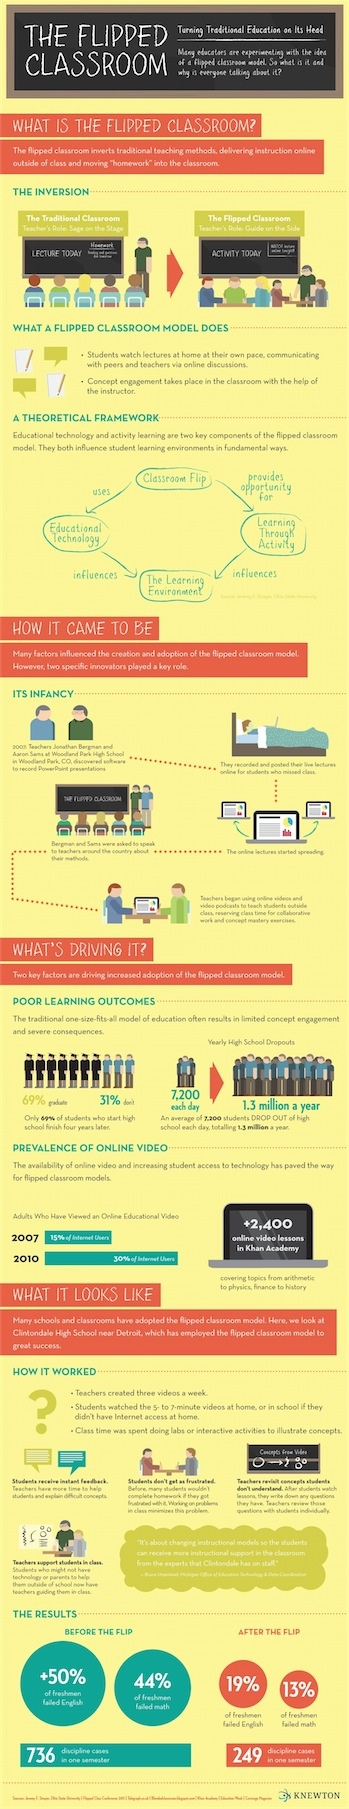 The Flipped Classroom - Infographic